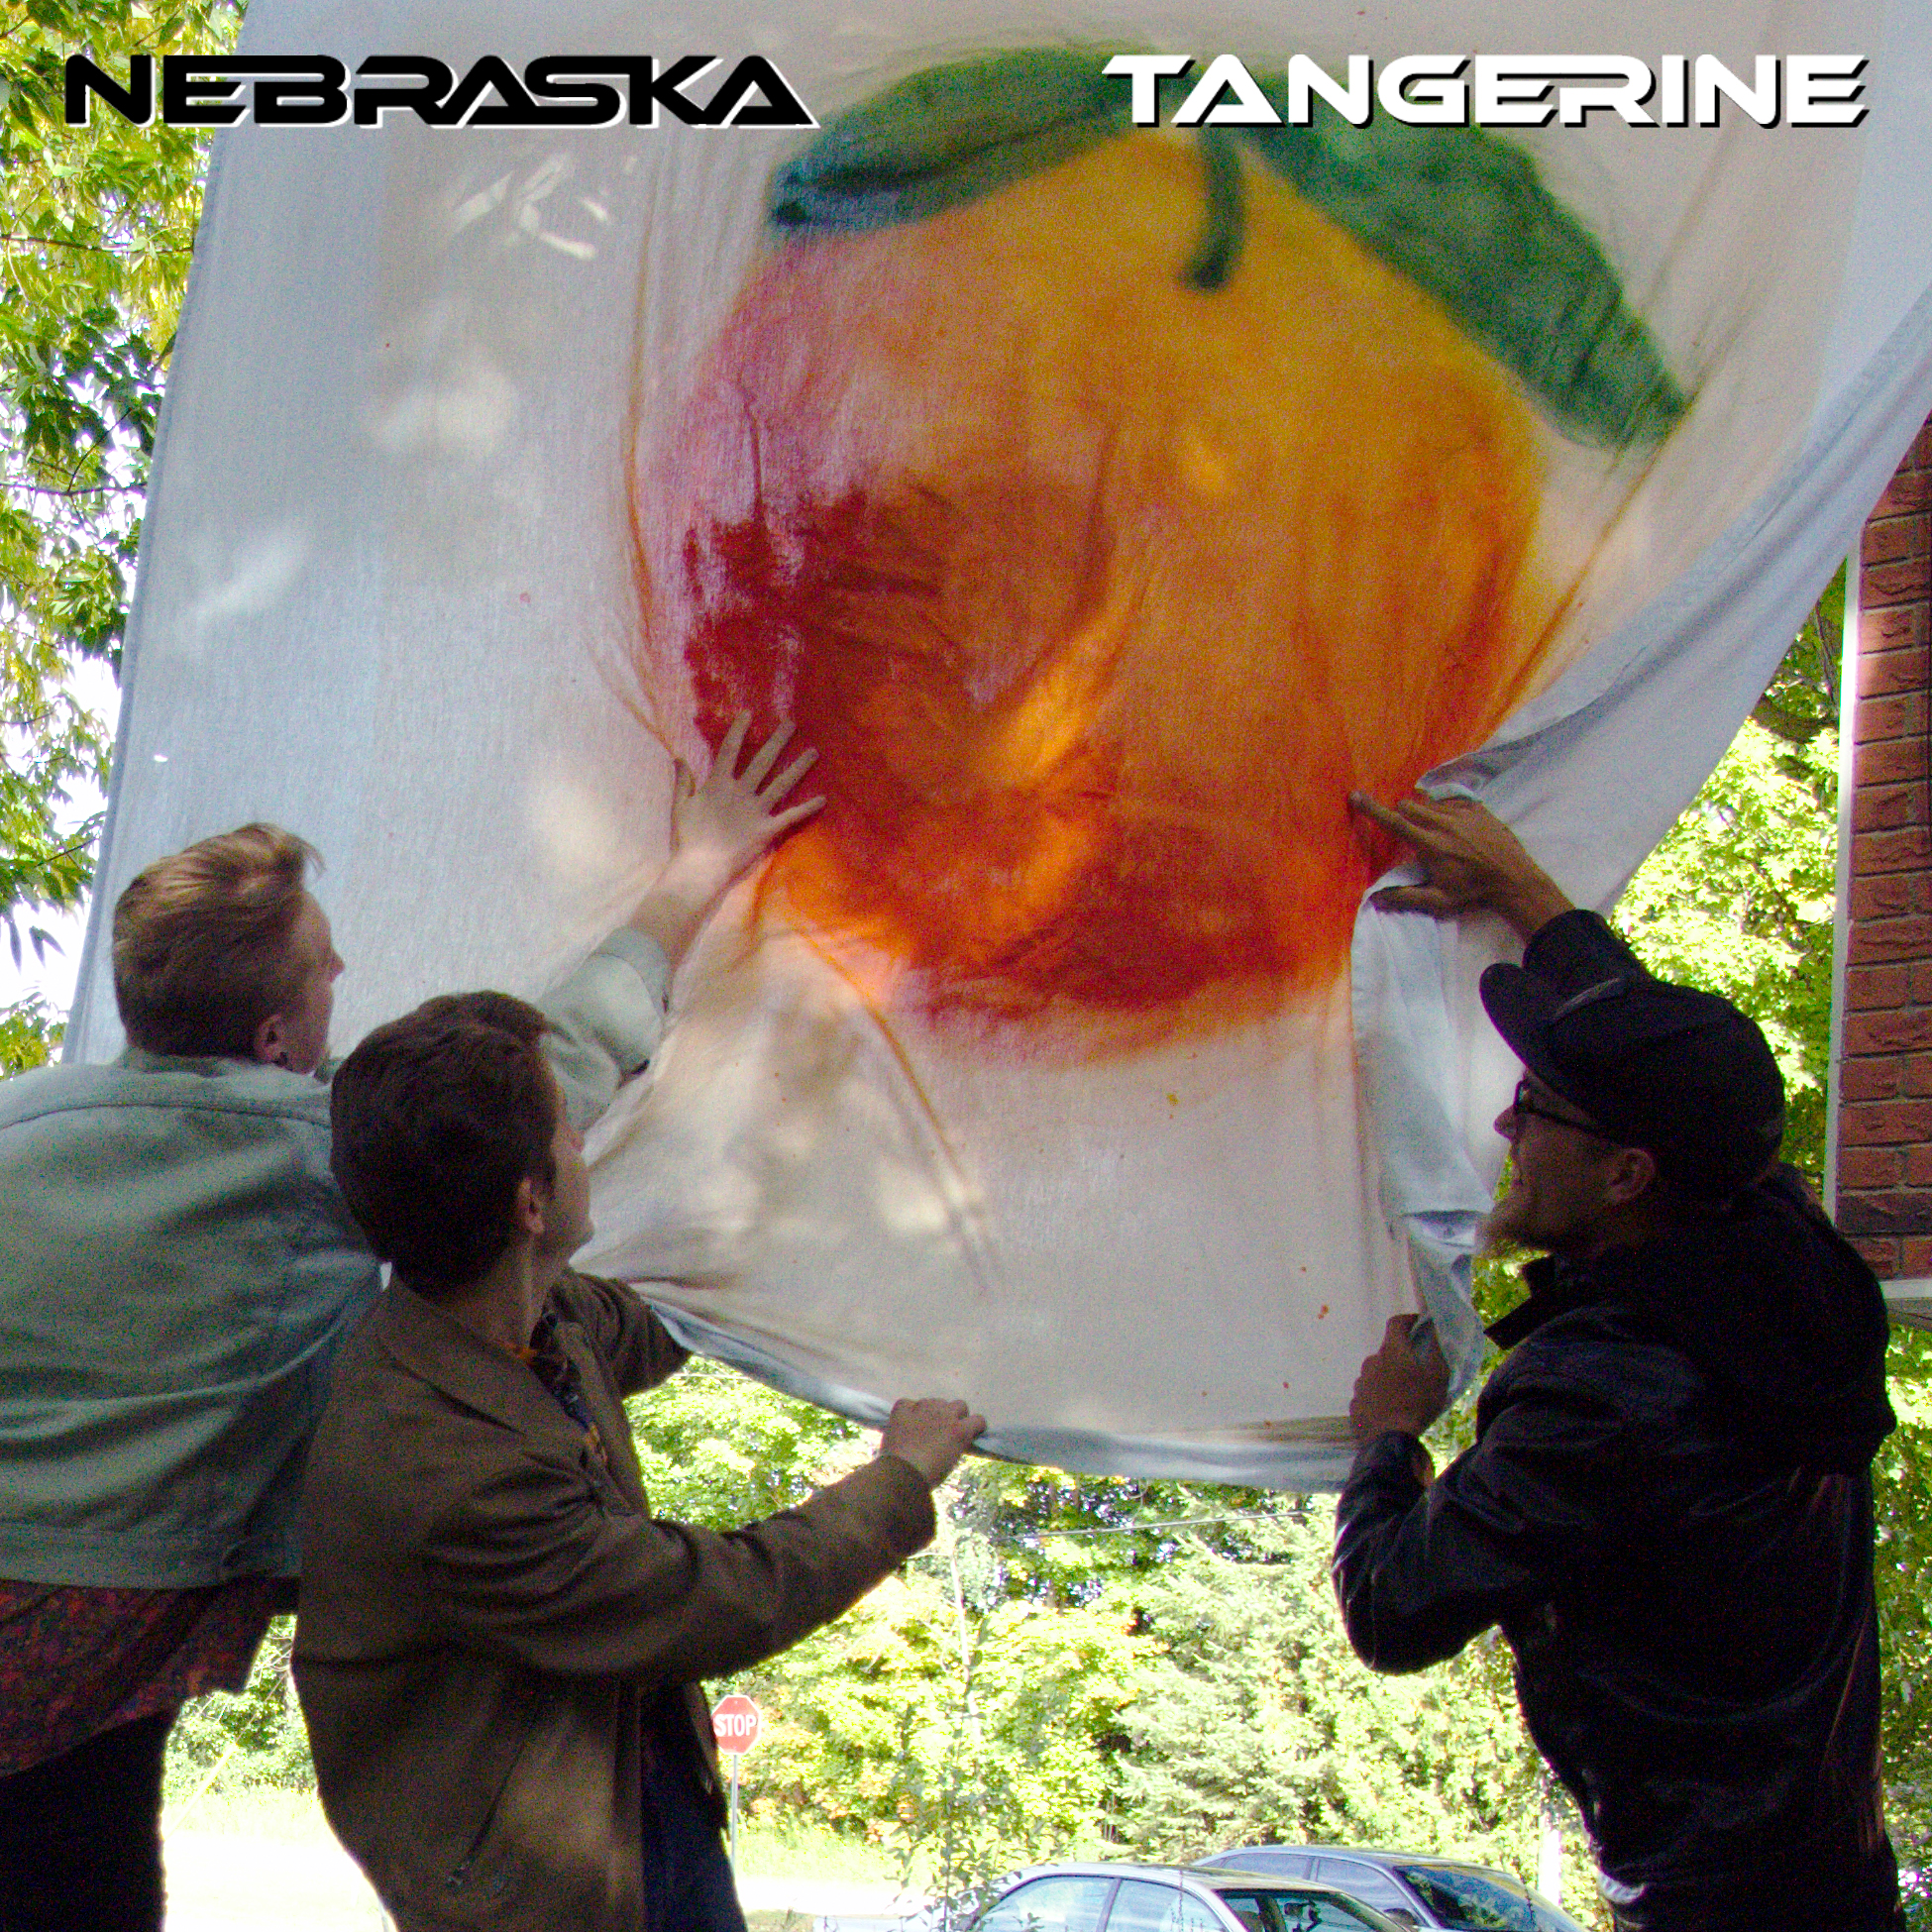 Nebraska – Tangerine (CD)